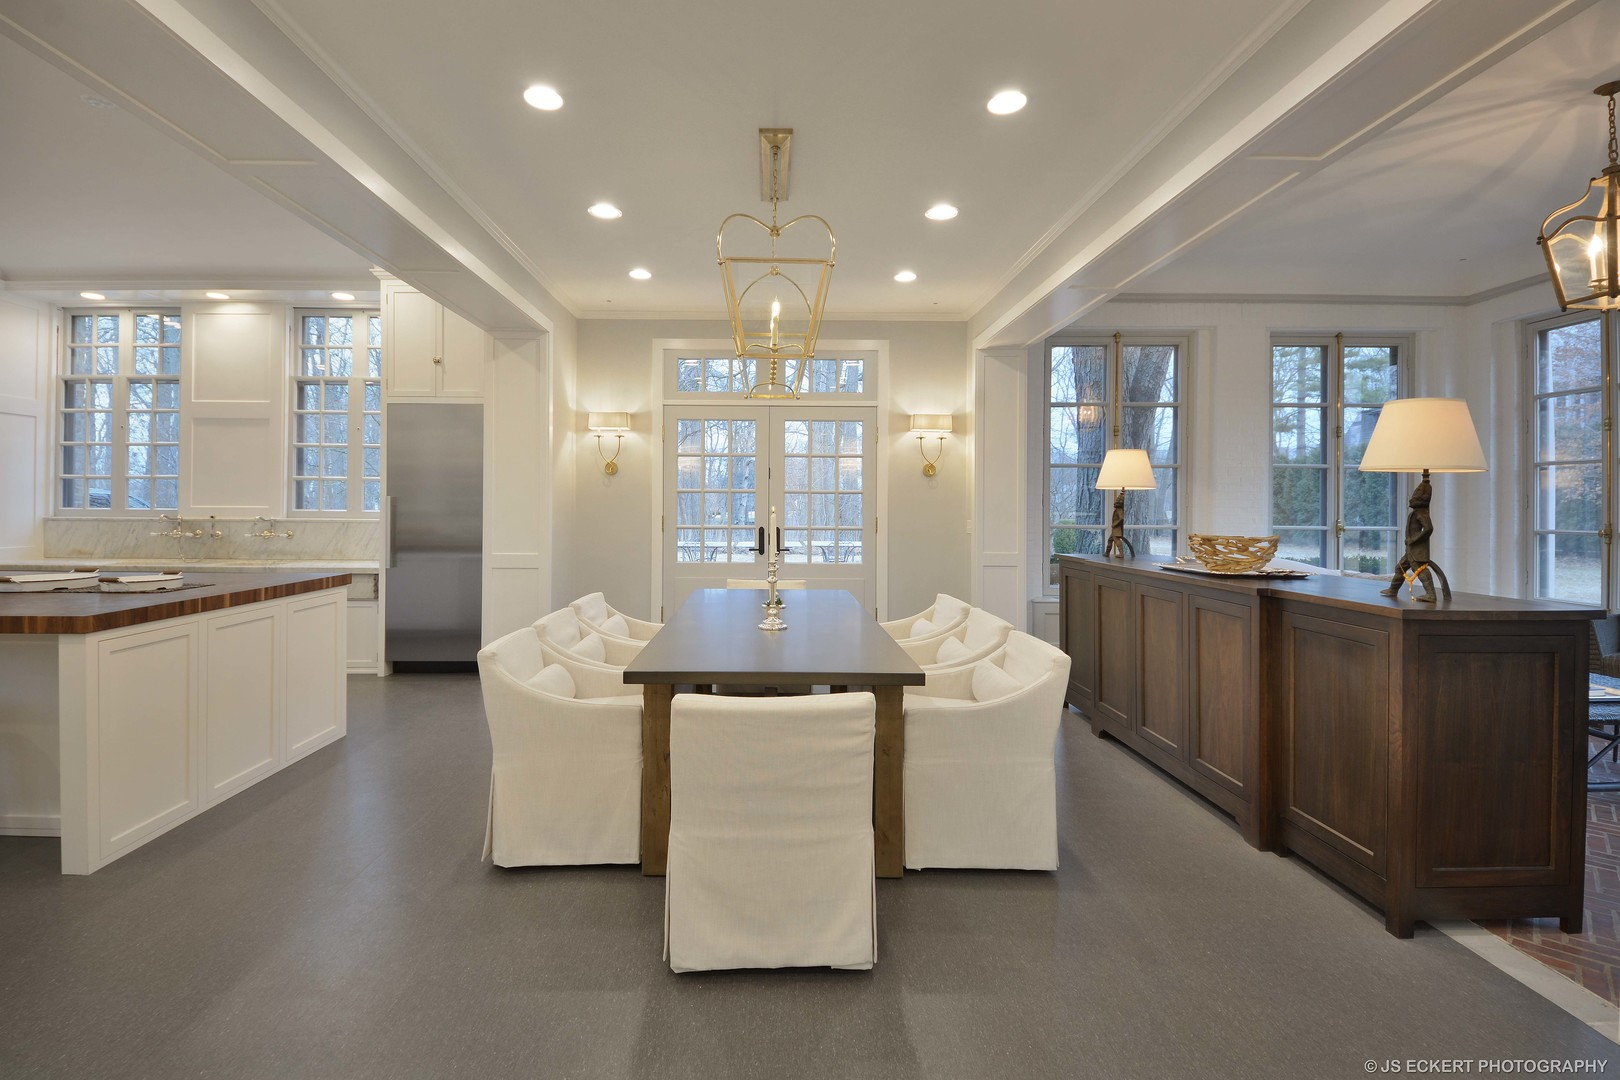 Modern and spare mostly white kitchen and breakfast room in a French chateau by David Adler known as the Carolyn More Ely House. Come see the tour of this amazing historic home for sale.